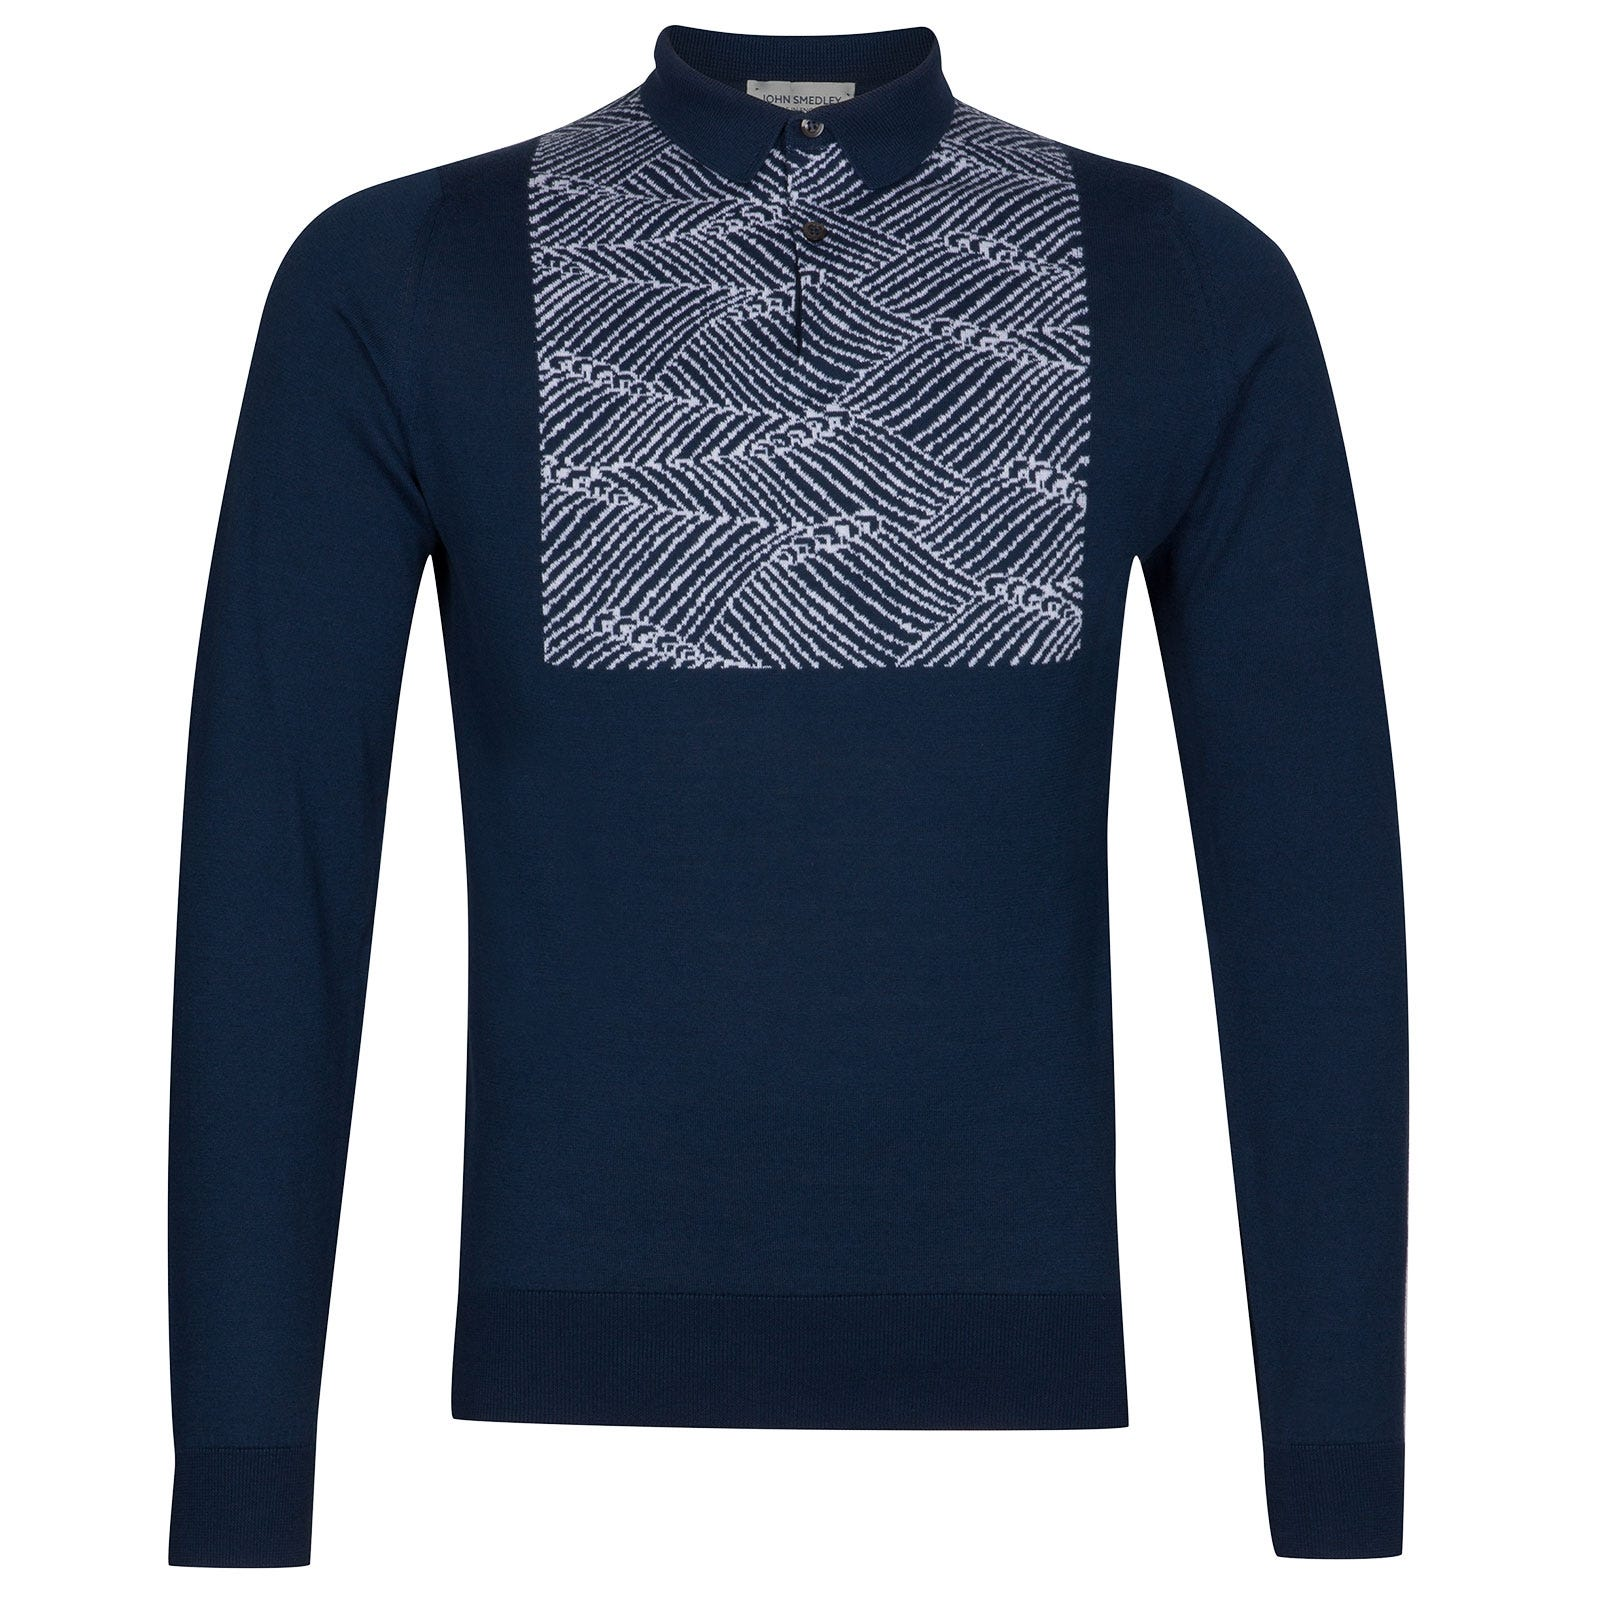 John Smedley Tickton Sea Island Cotton Polo Shirt in Indigo-SML